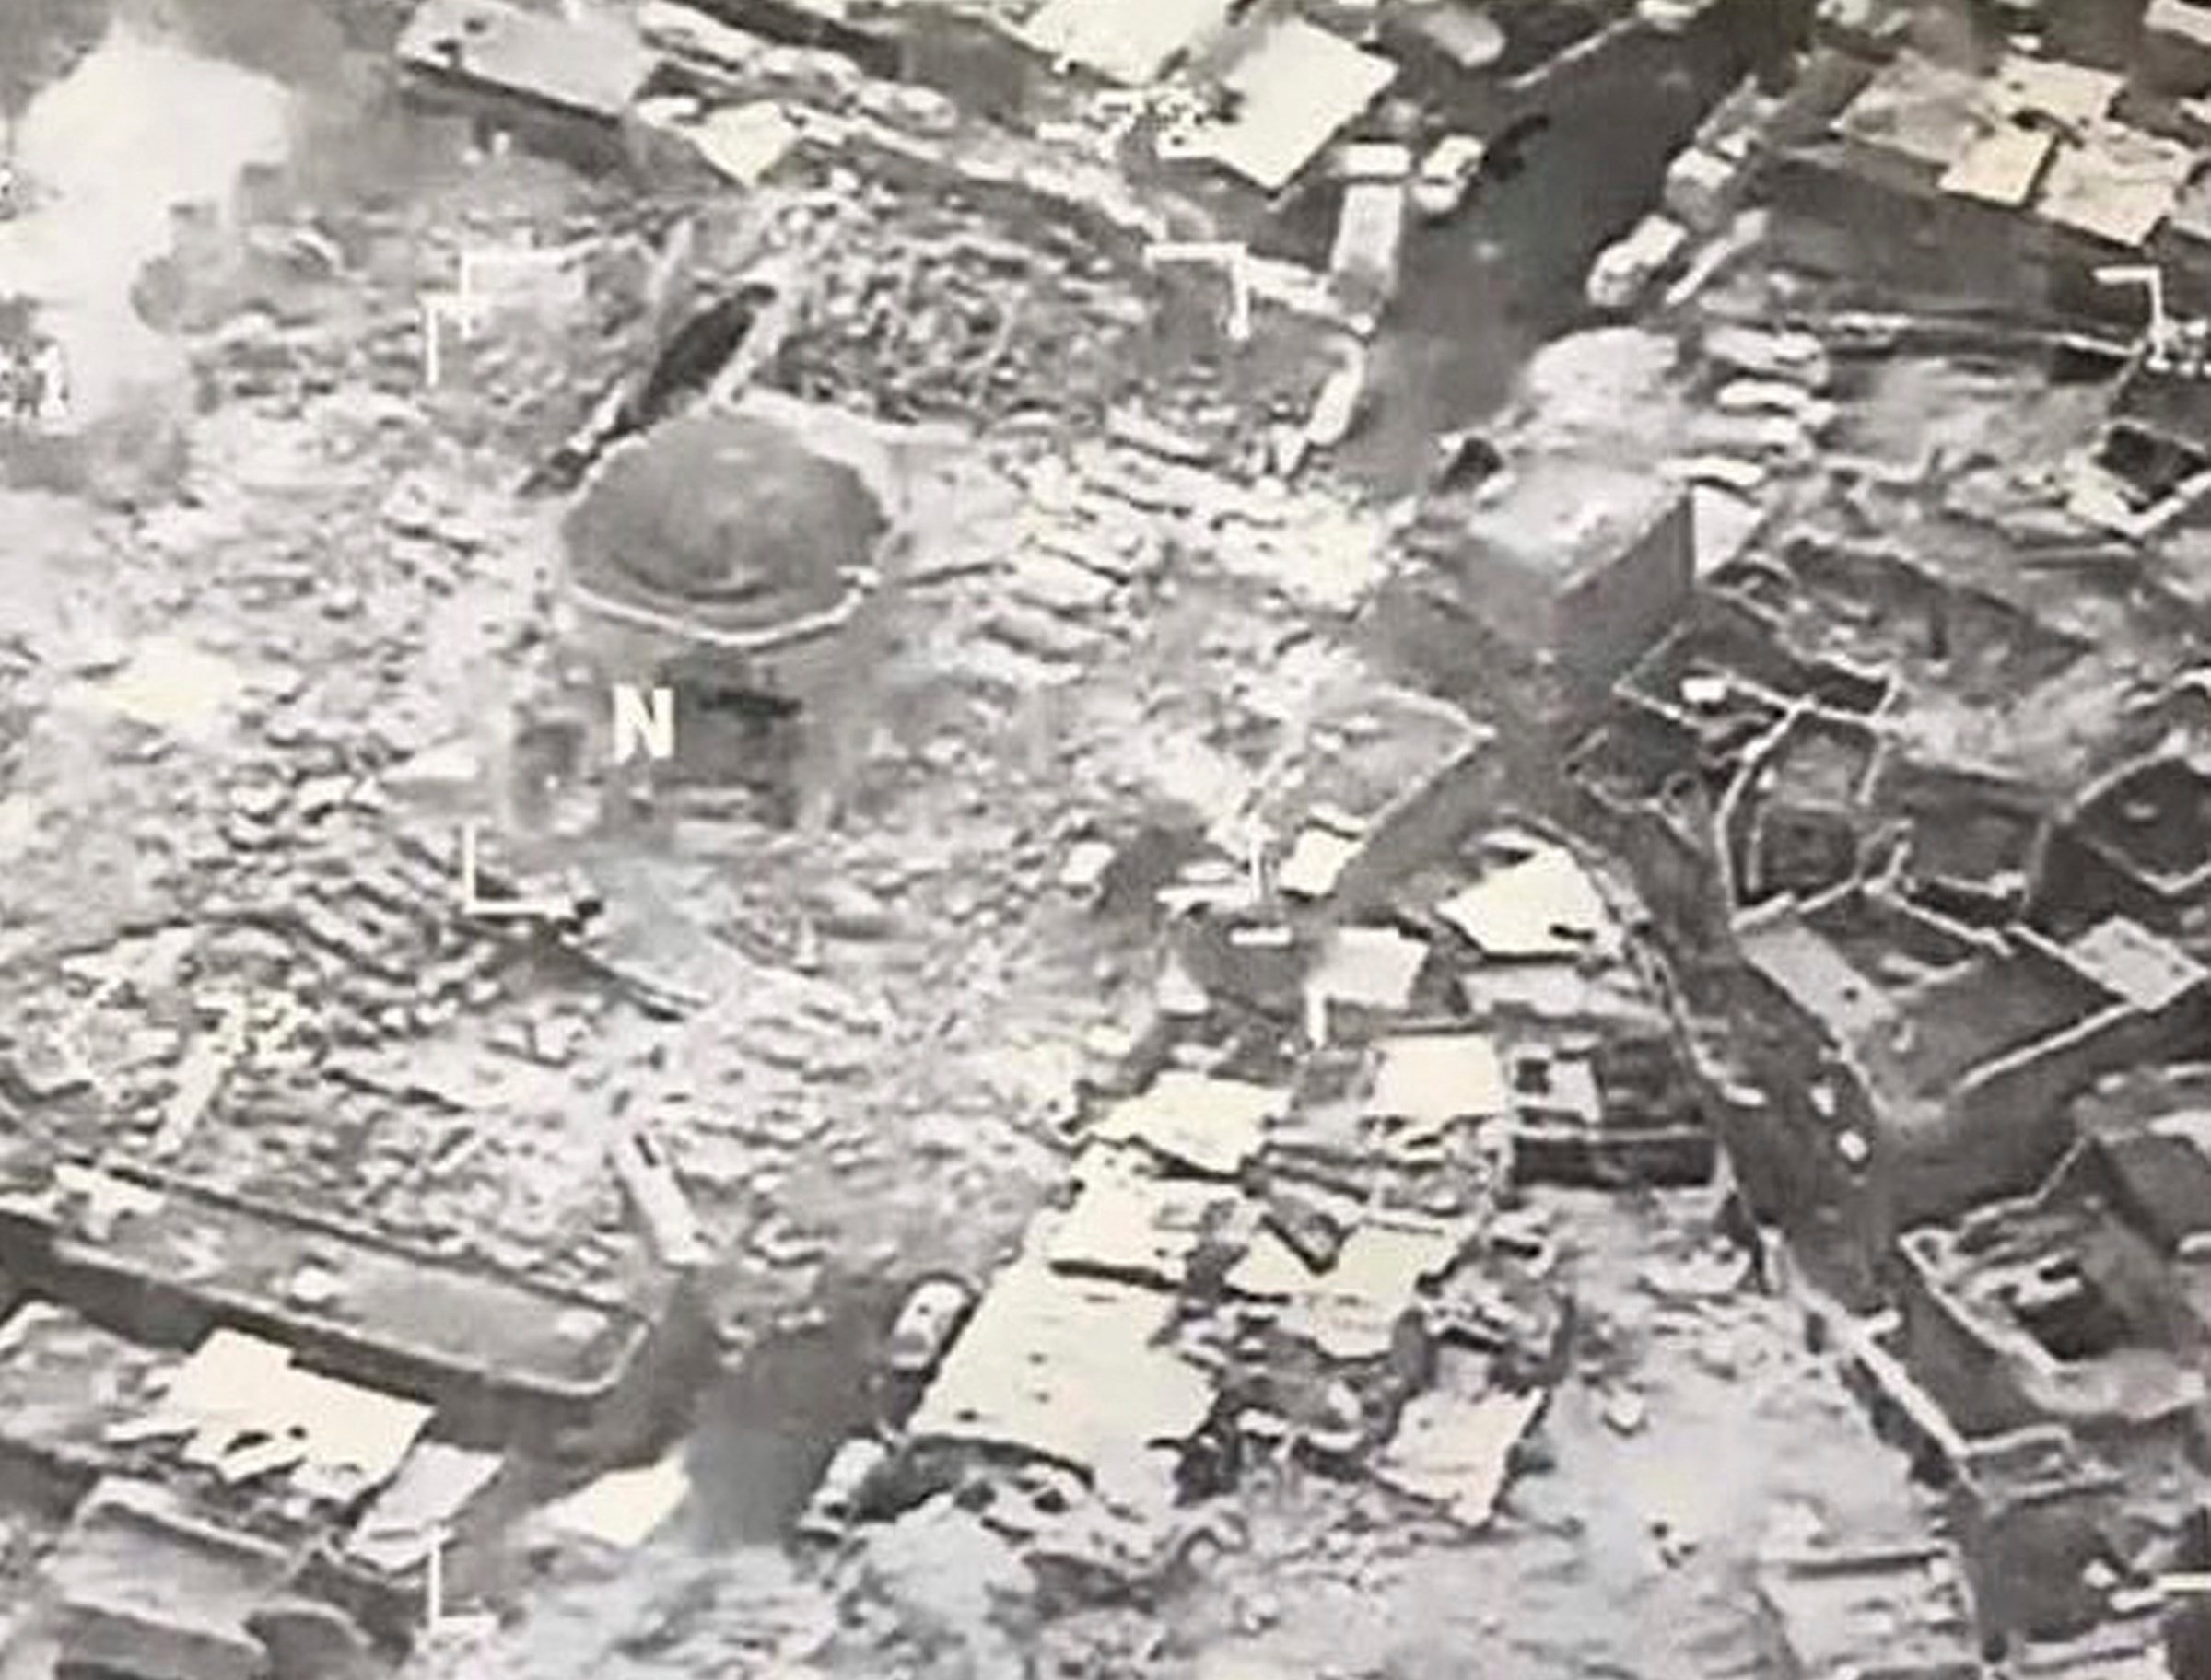 This image provided by U.S. CENTCOM shows al-Nuri mosque destroyed by the Islamic State group, in Mosul, Iraq, Wednesday, June 21, 2017. (U.S. CENTCOM via AP)